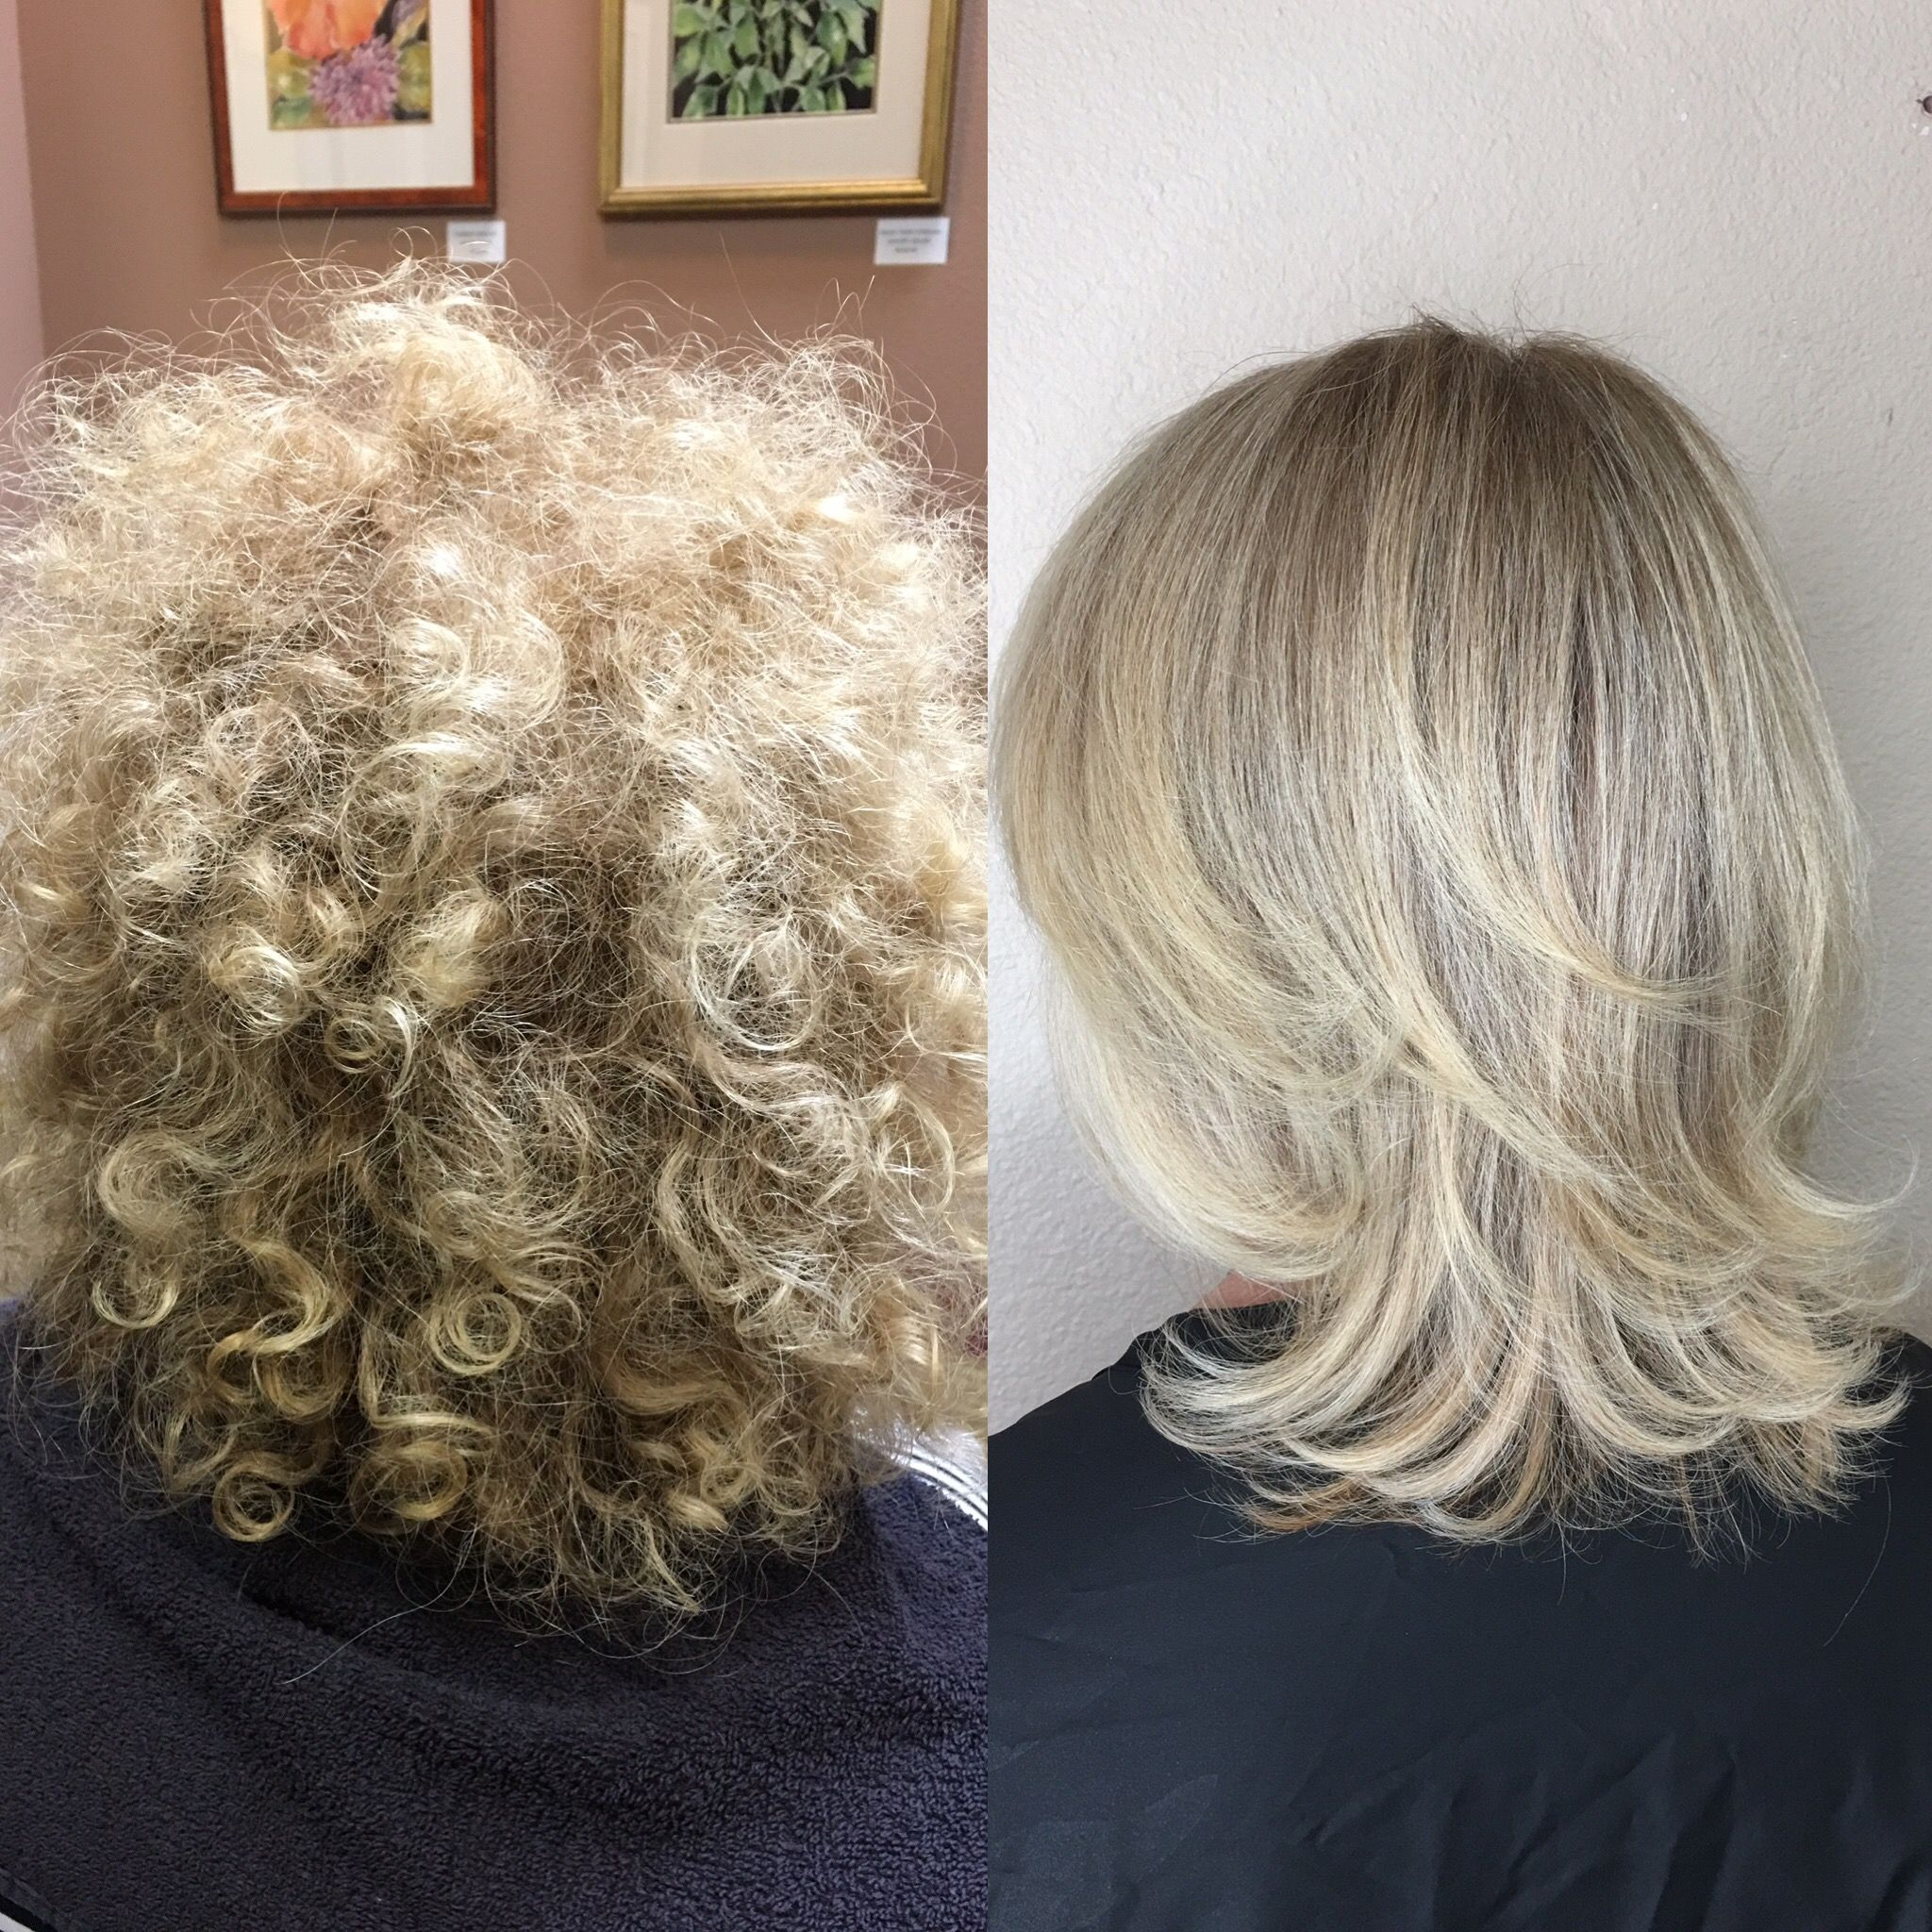 Before And After Brazilian Blowout Creamy Blonde Short Hair Curly Straight Short Layers Creamy Blonde Hair Short Hair Styles